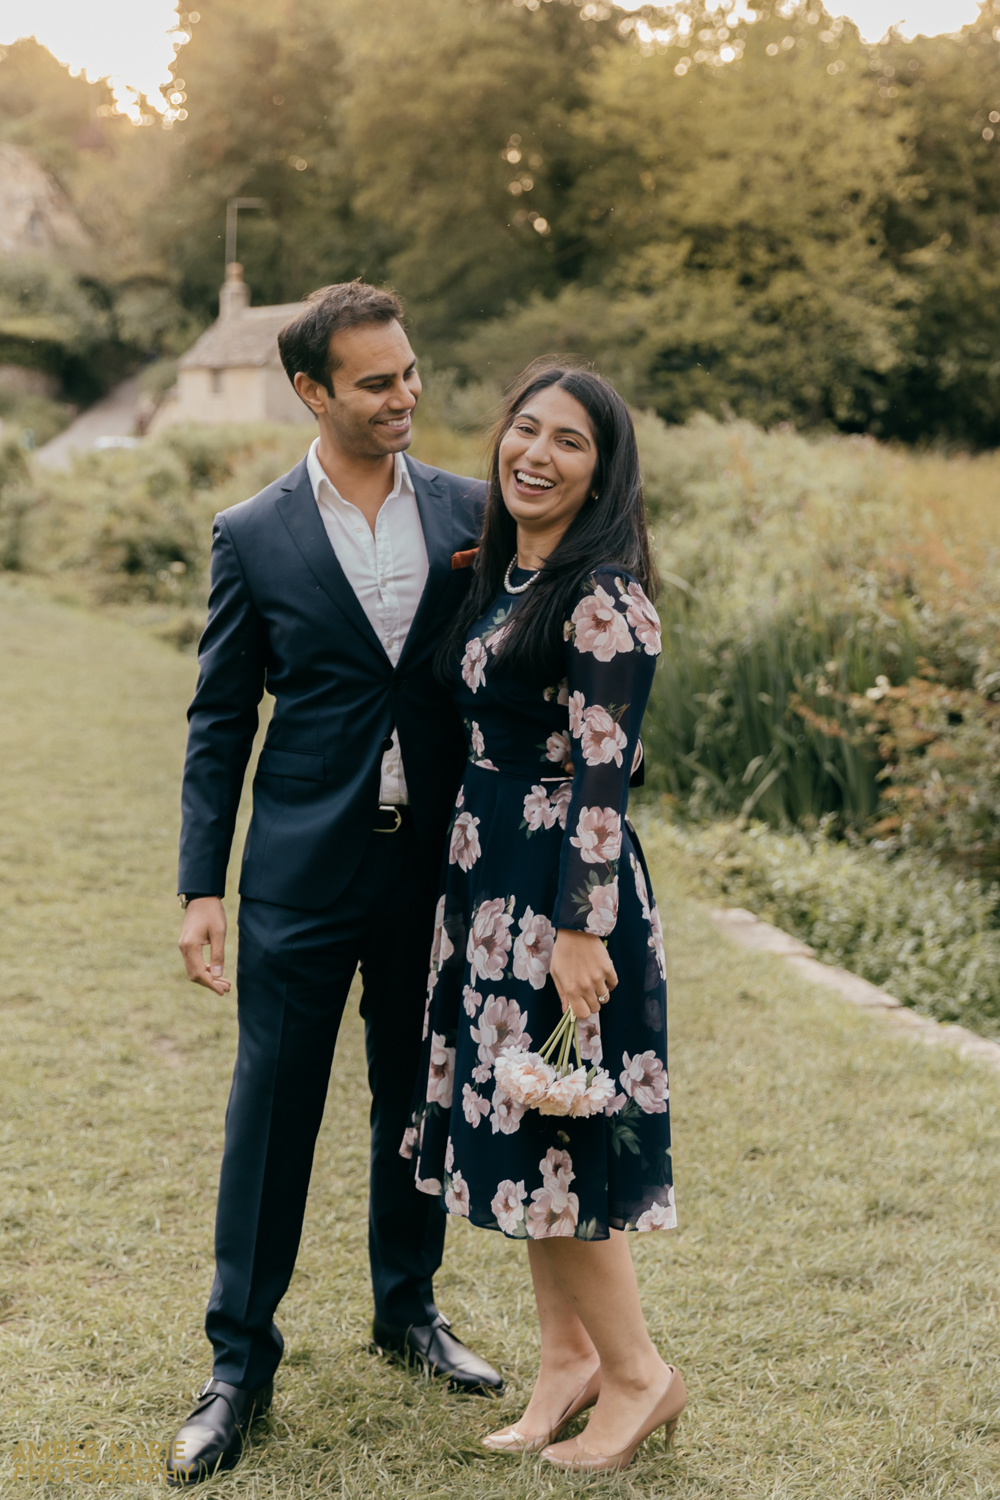 A natural portrait photograph of a joyful bride and groom. Wearing dark, relaxed wedding outfits. With a wild cotswold meadow behind them.